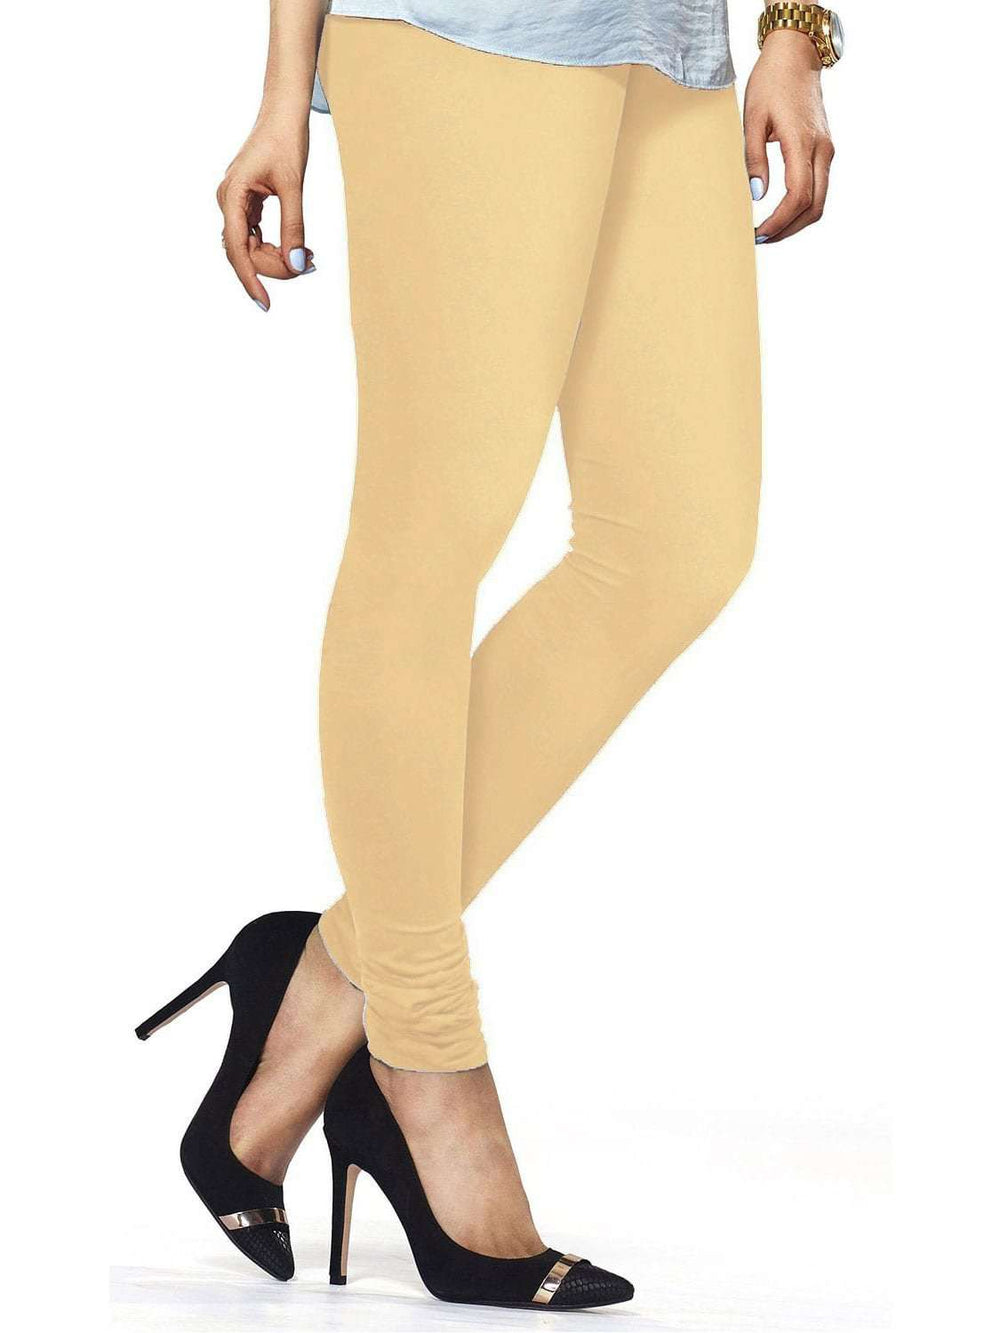 Cotton Lycra Churidar Free Size Skin Leggings